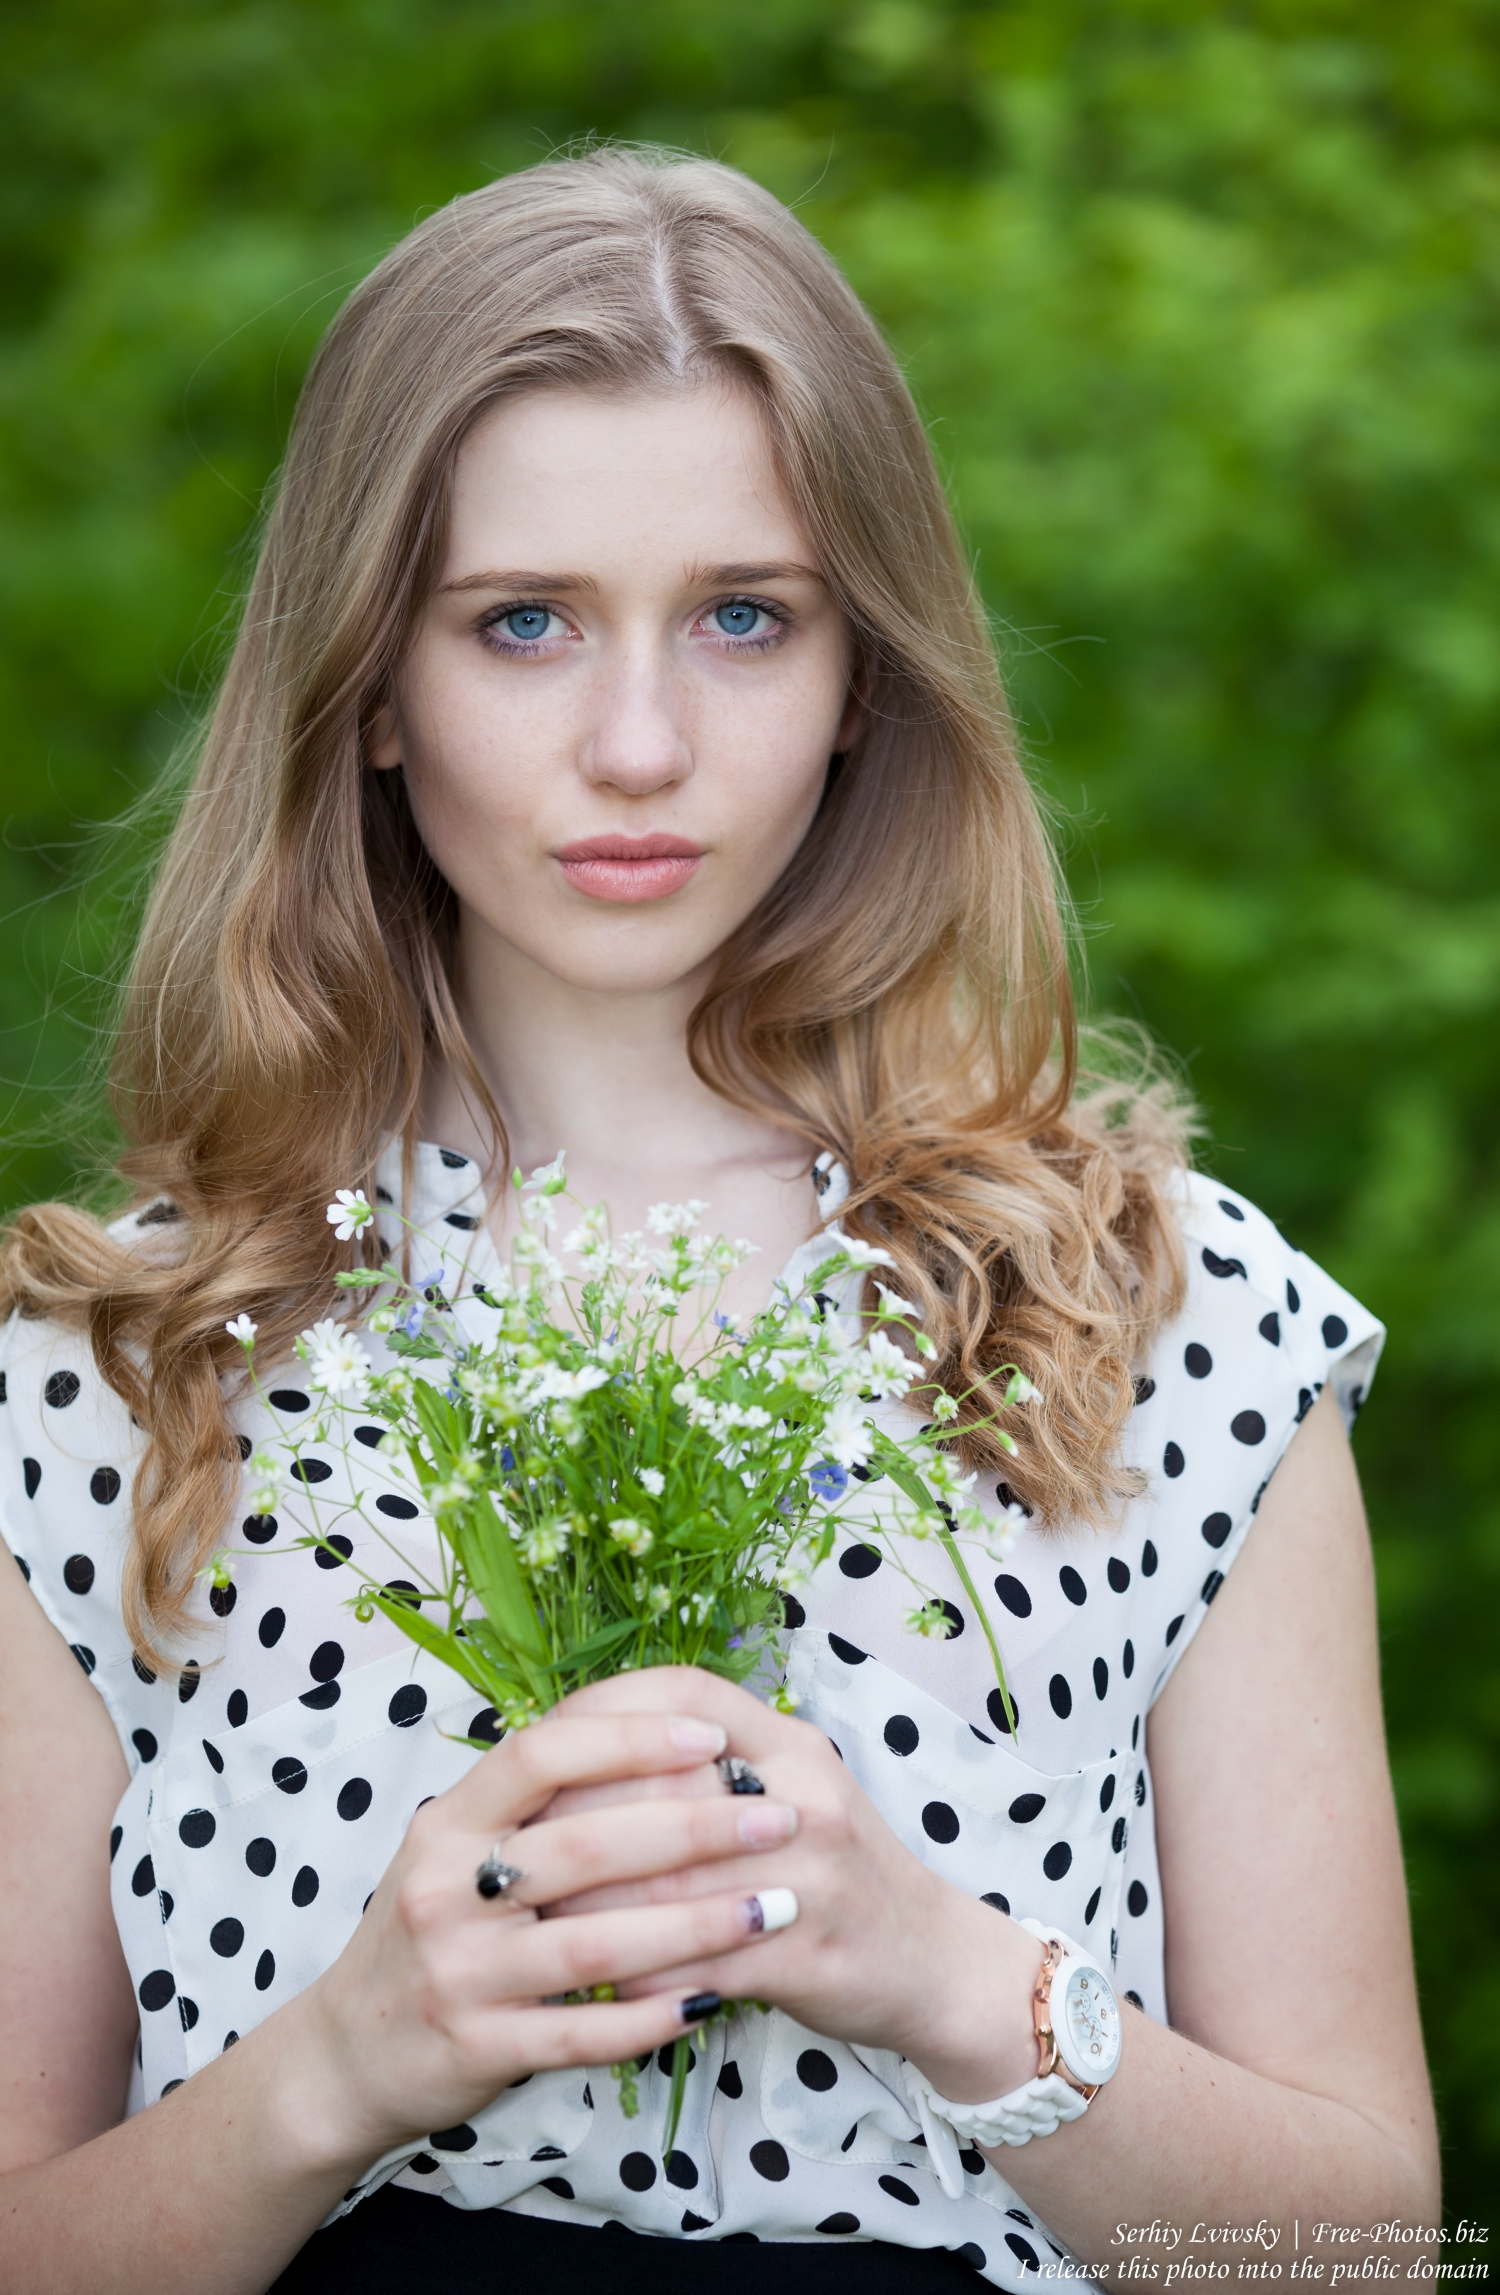 a_17-year-old_natural_blond_girl_photographed_in_may_2016_by_serhiy_lvivsky_25